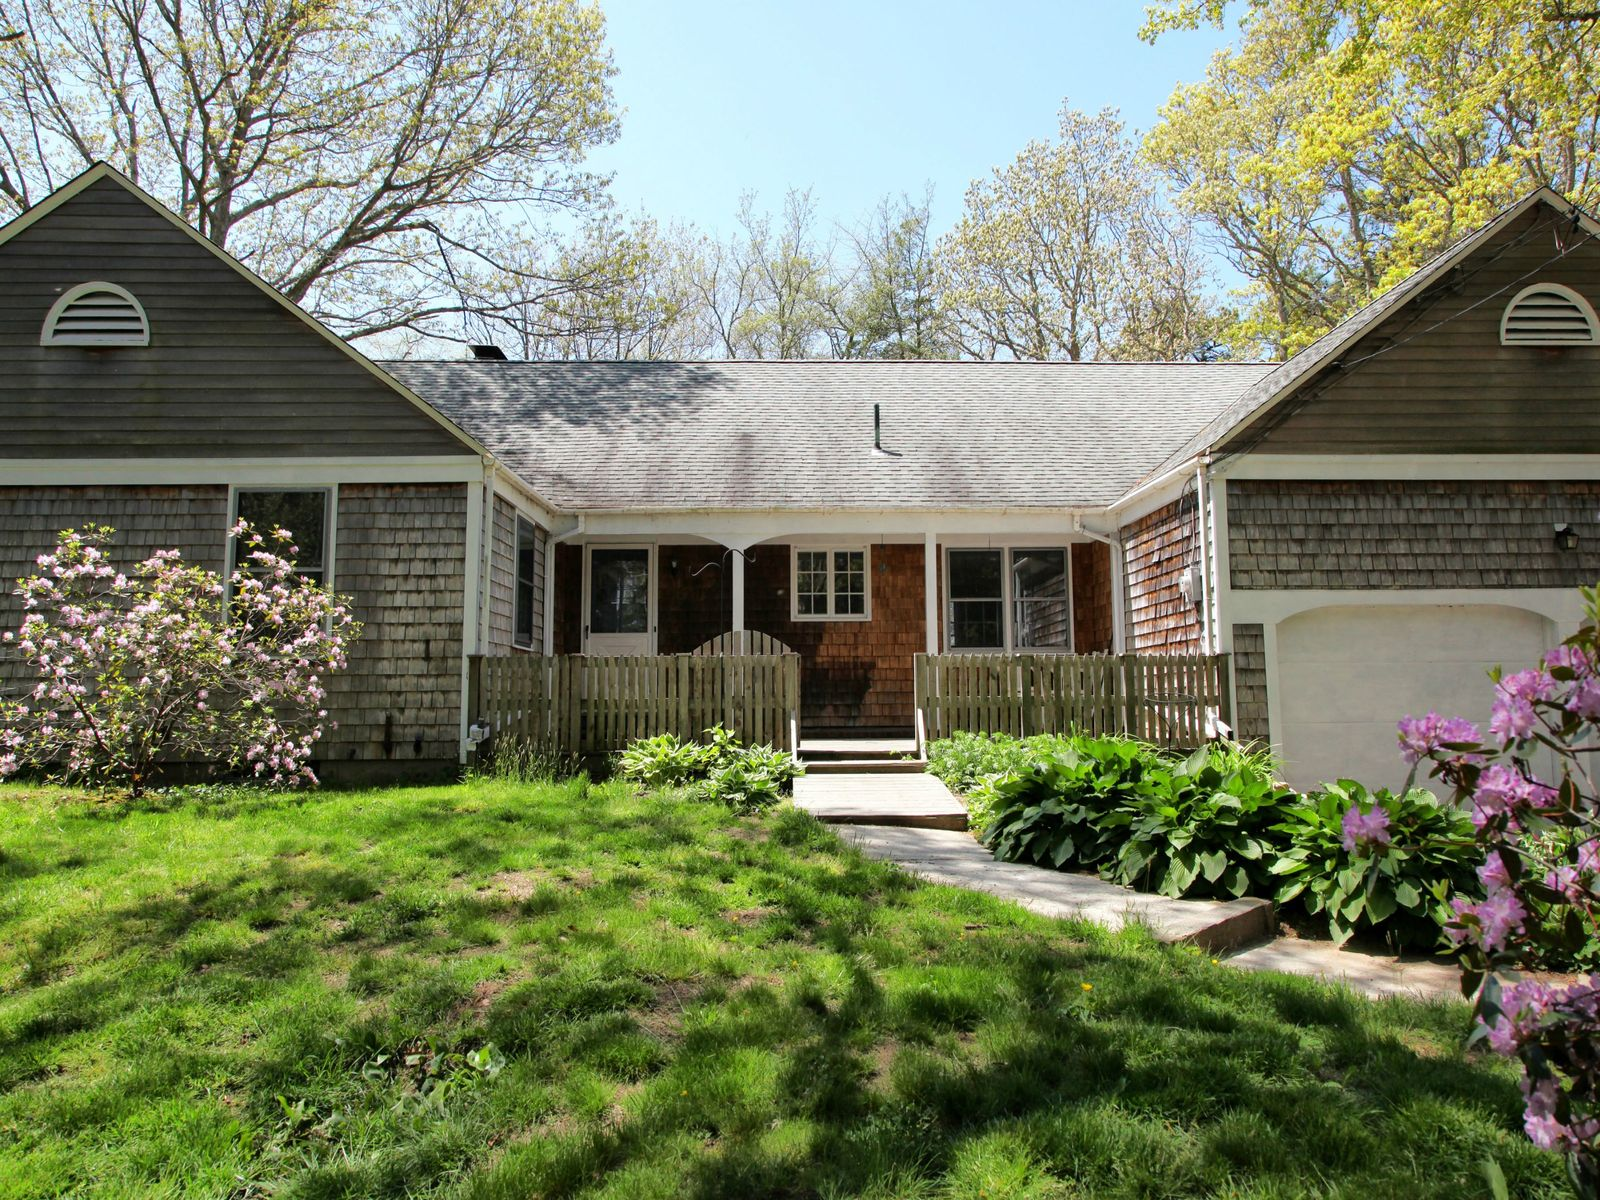 Wequaquet Waterfront, Centerville MA Single Family Home - Cape Cod Real Estate